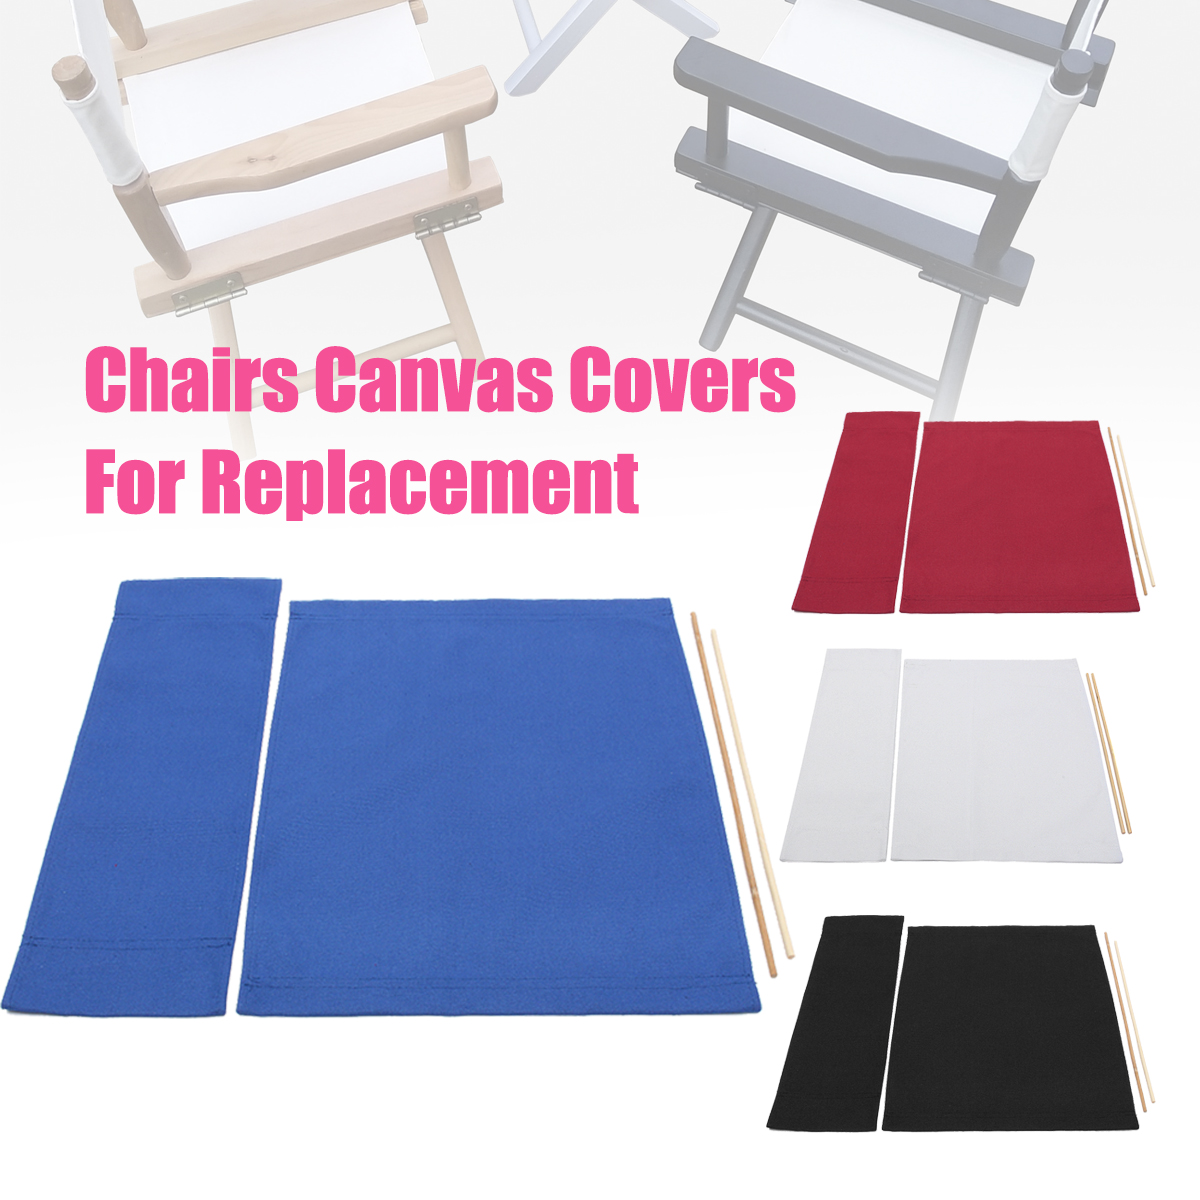 Awesome Details About Canvas Casual Directors Chairs Cover Set Replacement Seat Kit Outdoor Garden Au Caraccident5 Cool Chair Designs And Ideas Caraccident5Info